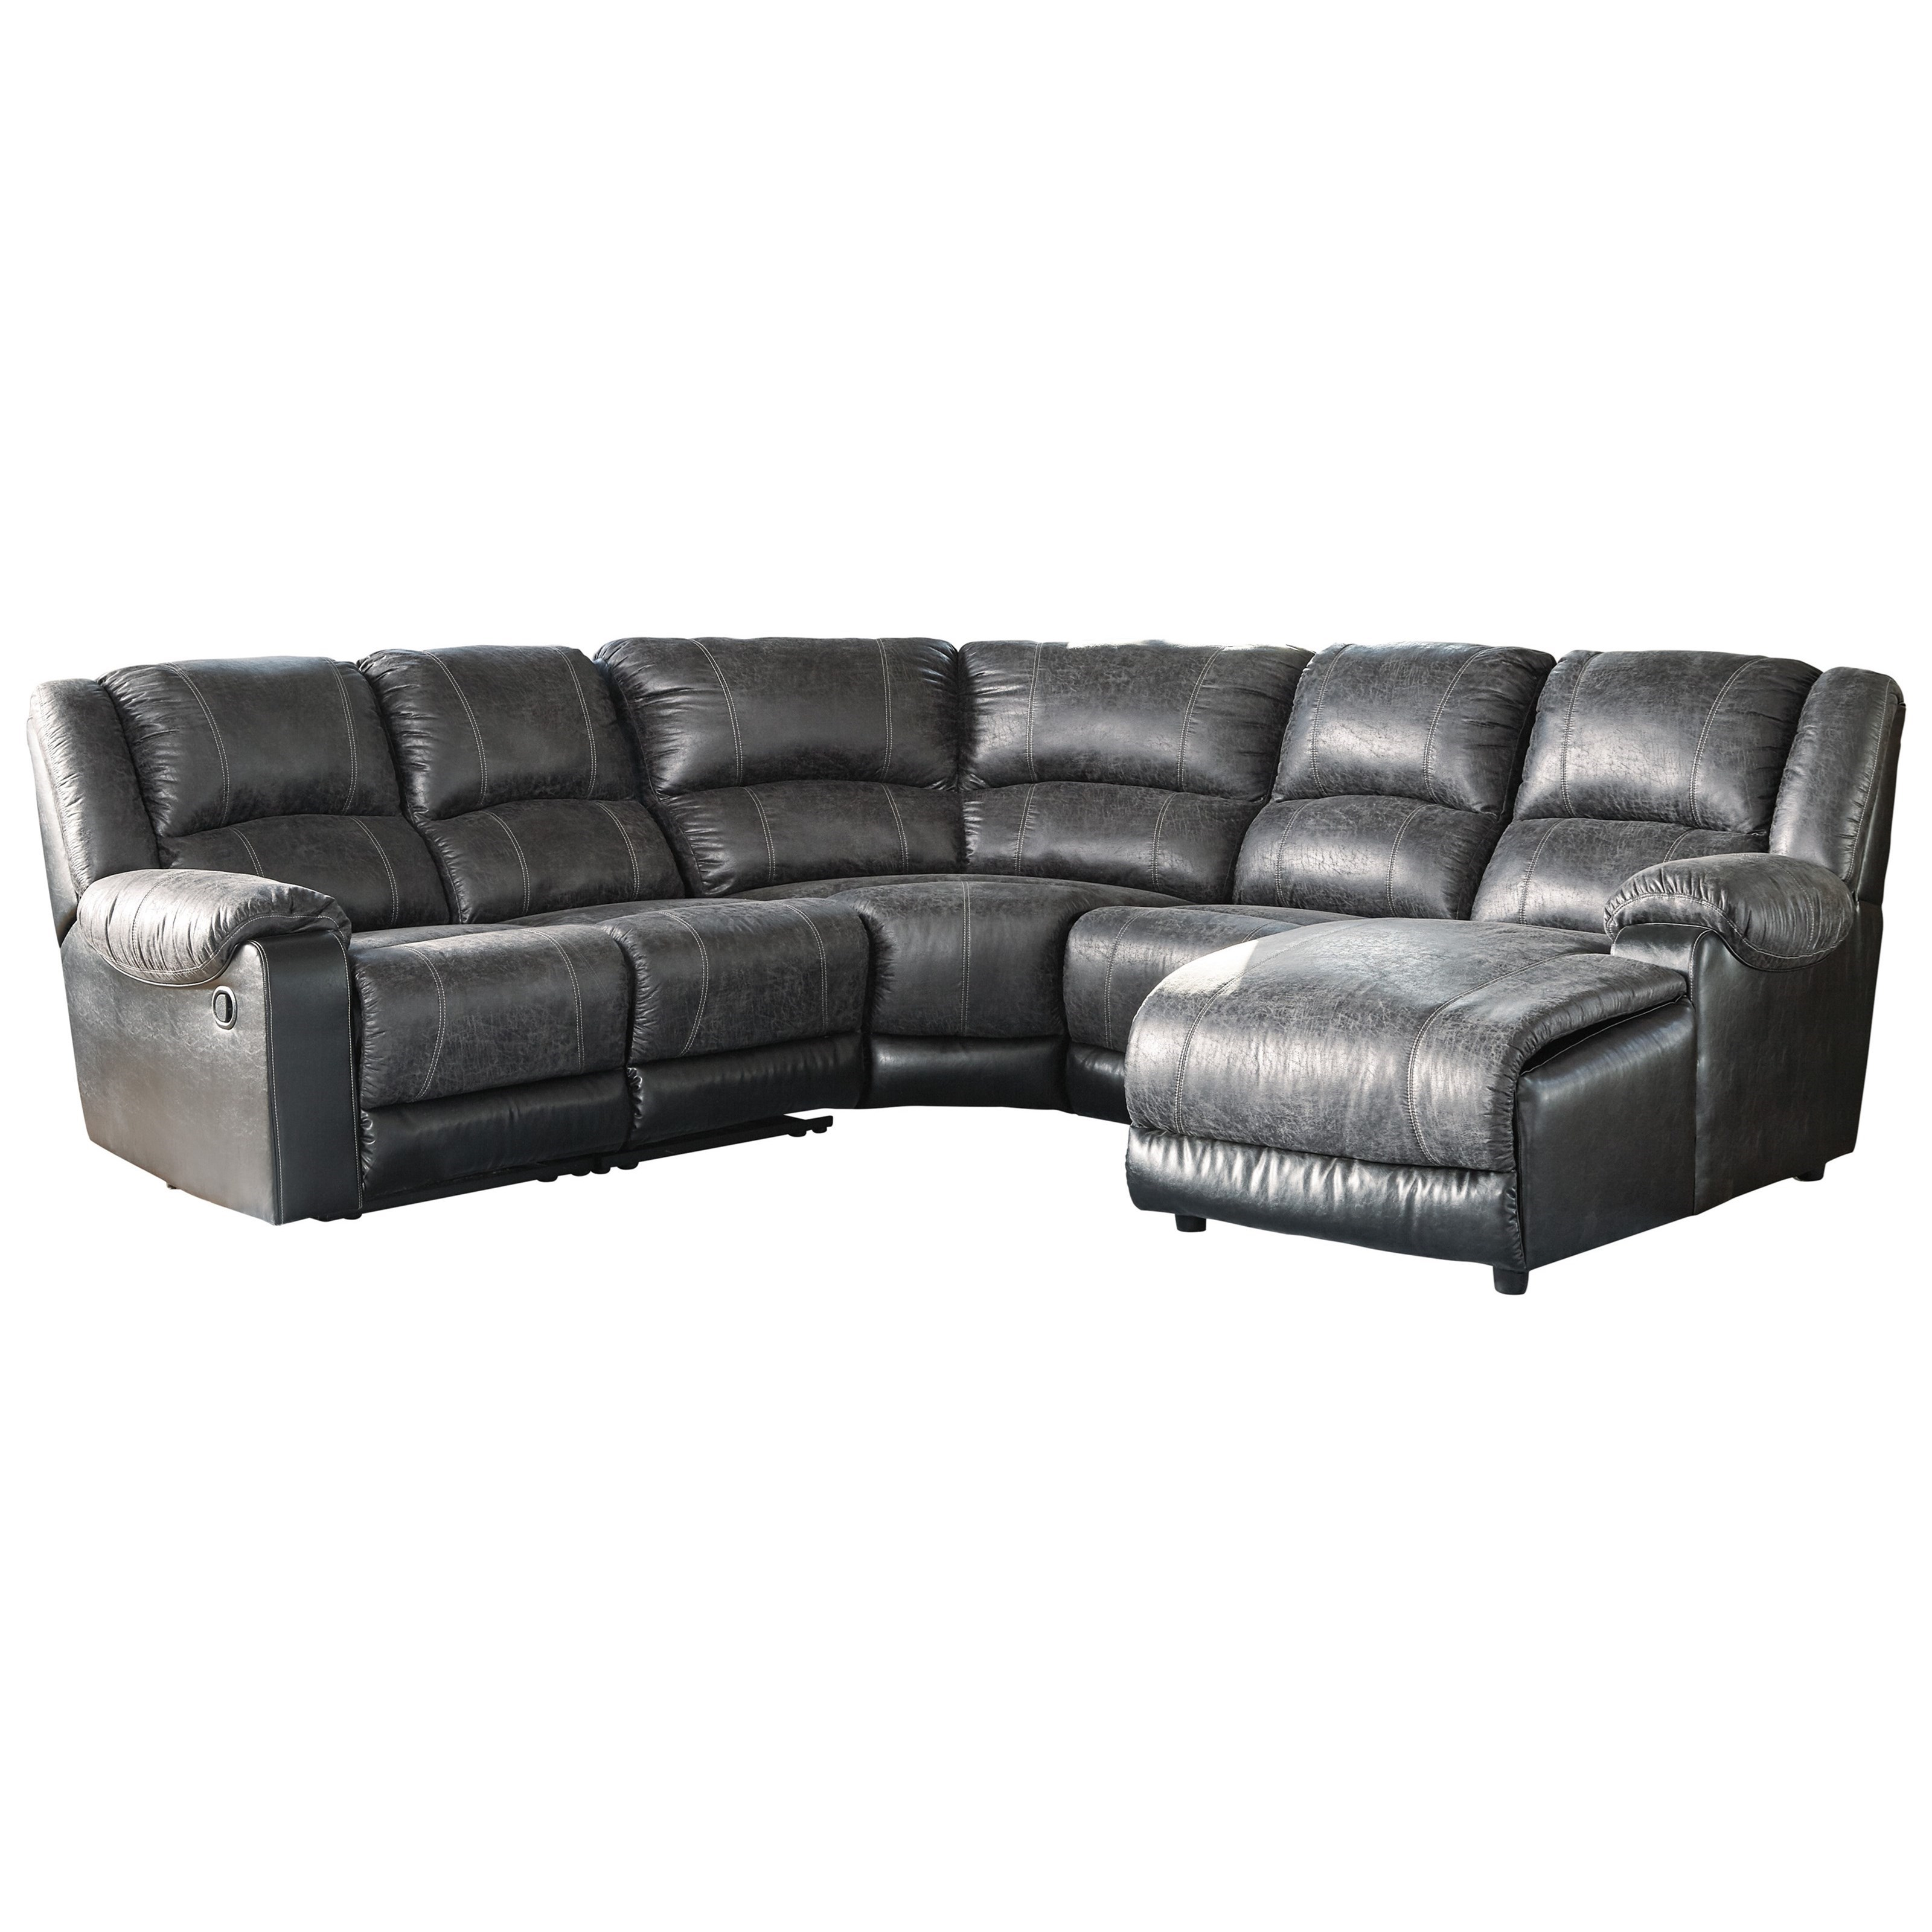 Signature Design by Ashley Nantahala Faux Leather Reclining Sectional with Chaise  sc 1 st  Wayside Furniture & Signature Design by Ashley Nantahala Faux Leather Reclining ... islam-shia.org